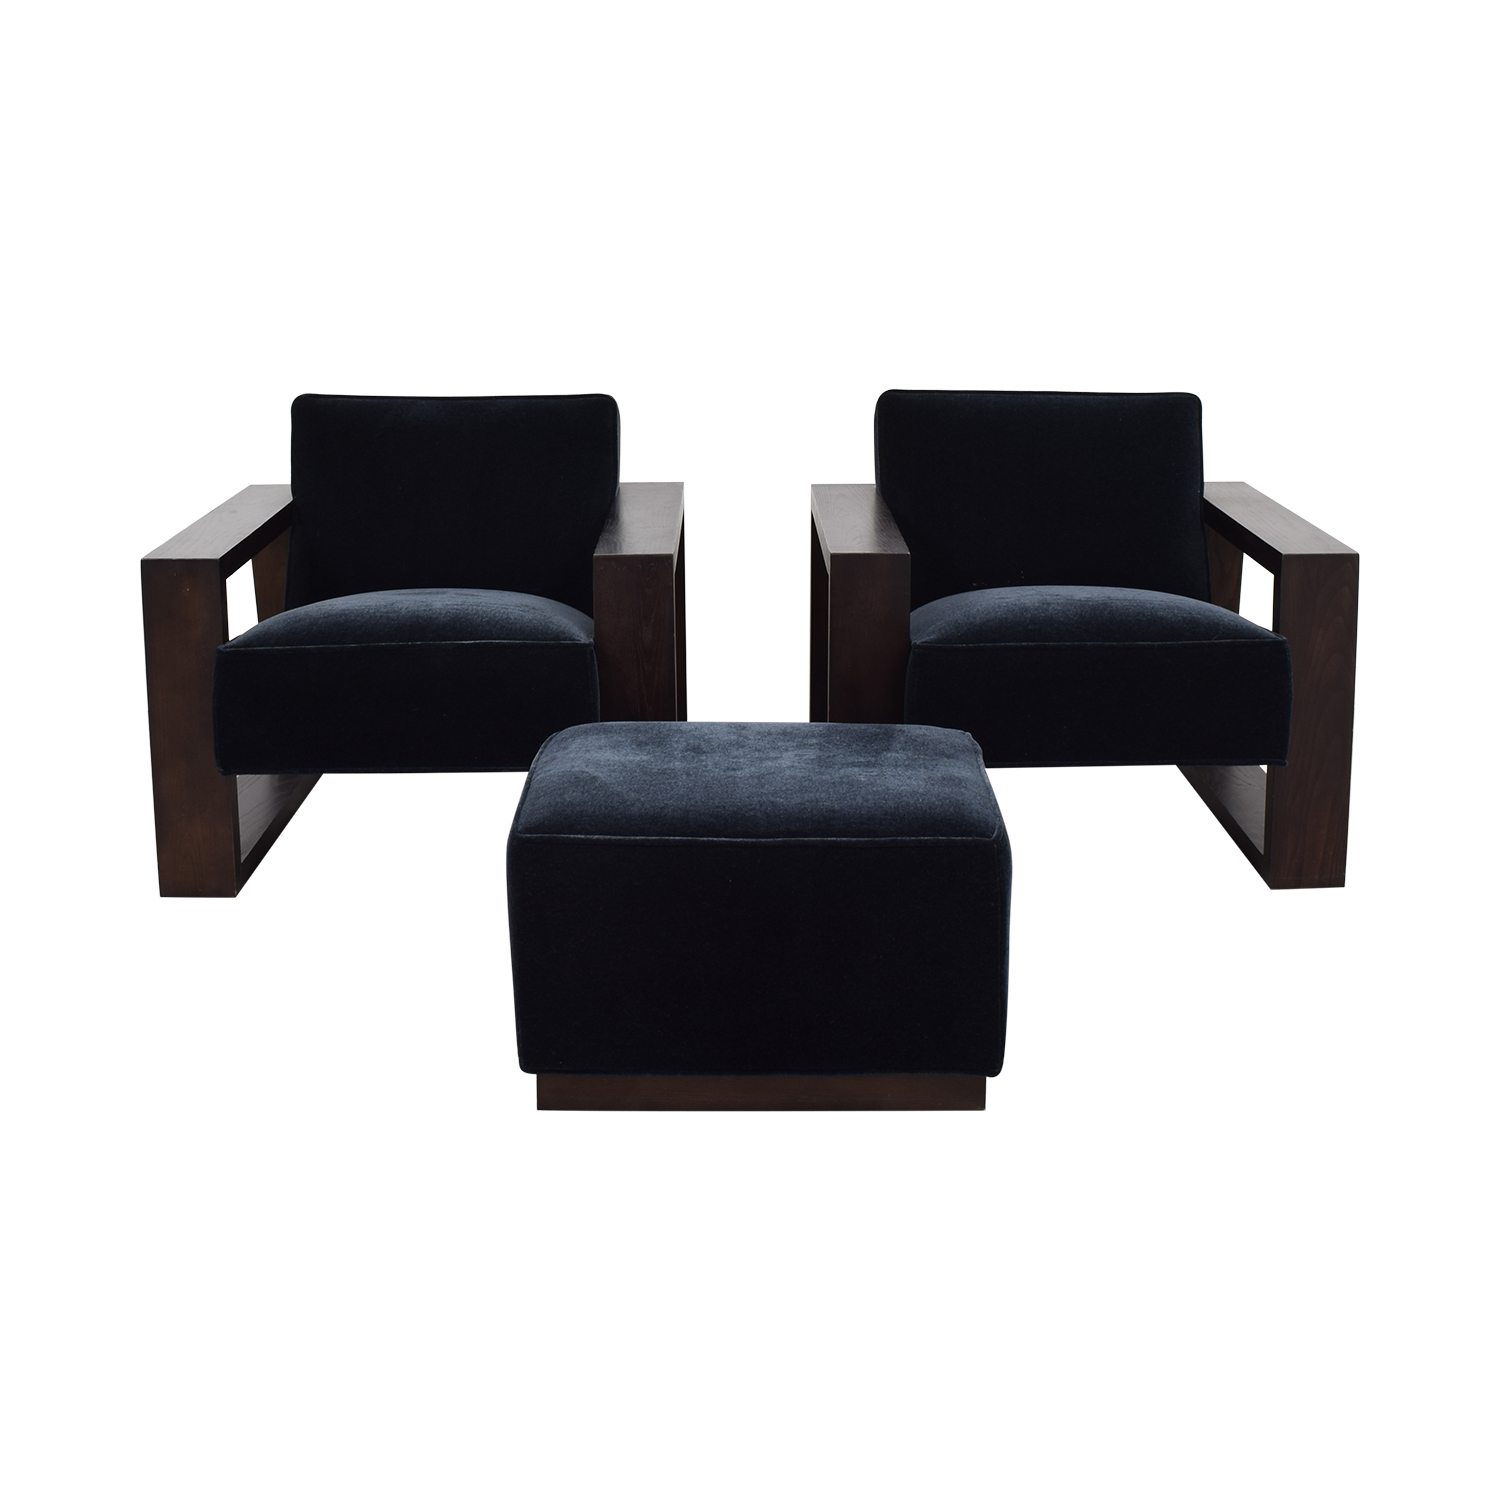 Mitchell Gold + Bob Williams Mitchell Gold + Bob Williams Charcoal Mohair Chairs and Ottoman price